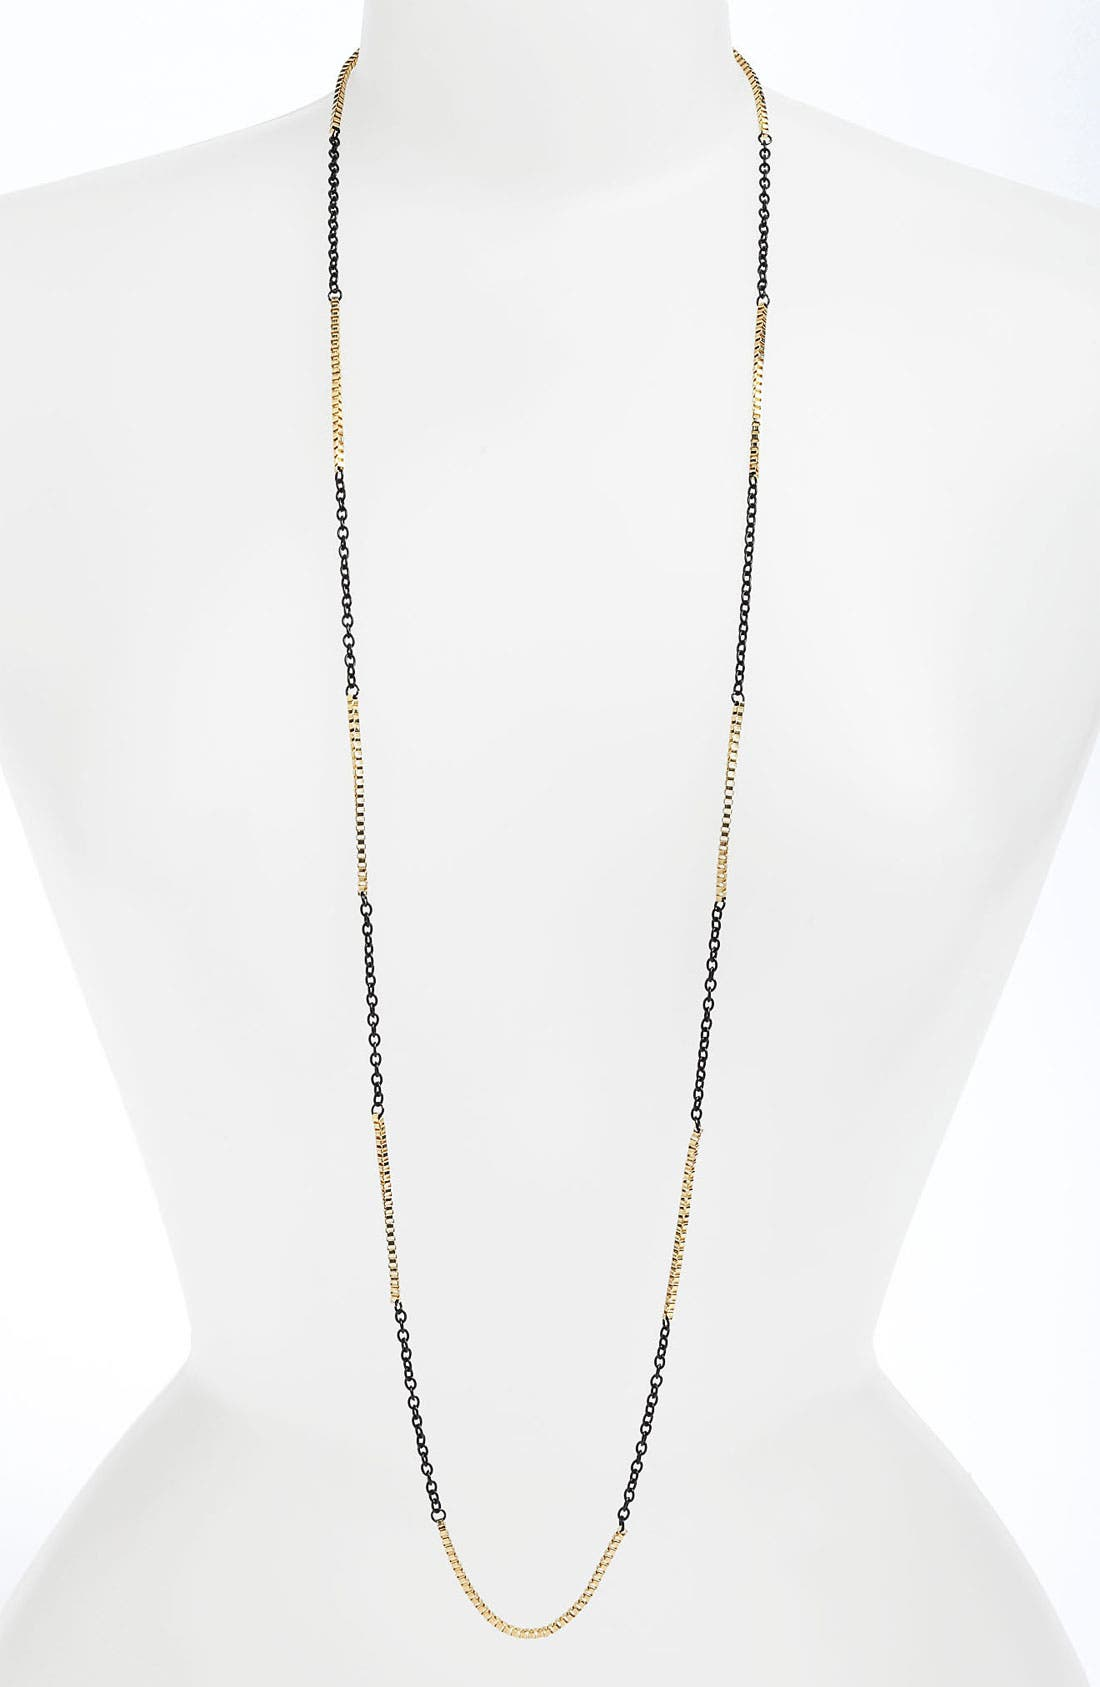 Stephan & Co Mixed Chain Necklace,                             Main thumbnail 1, color,                             016